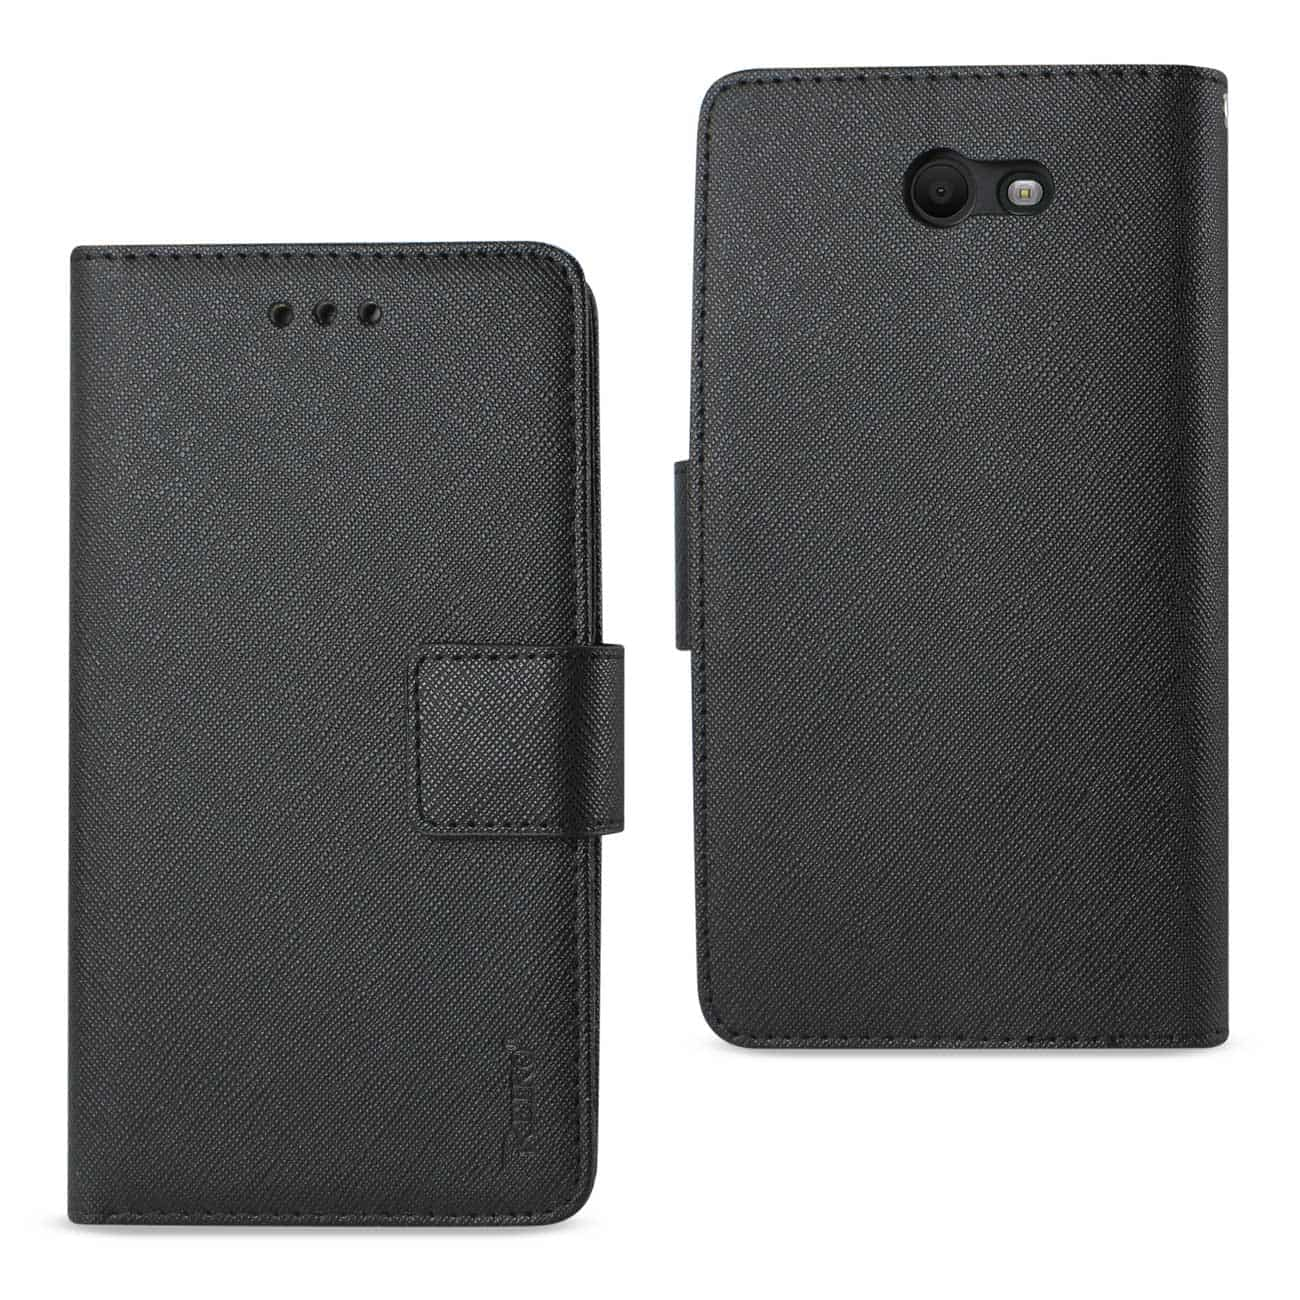 SAMSUNG GALAXY J7 V (2017) 3-IN-1 WALLET CASE IN BLACK